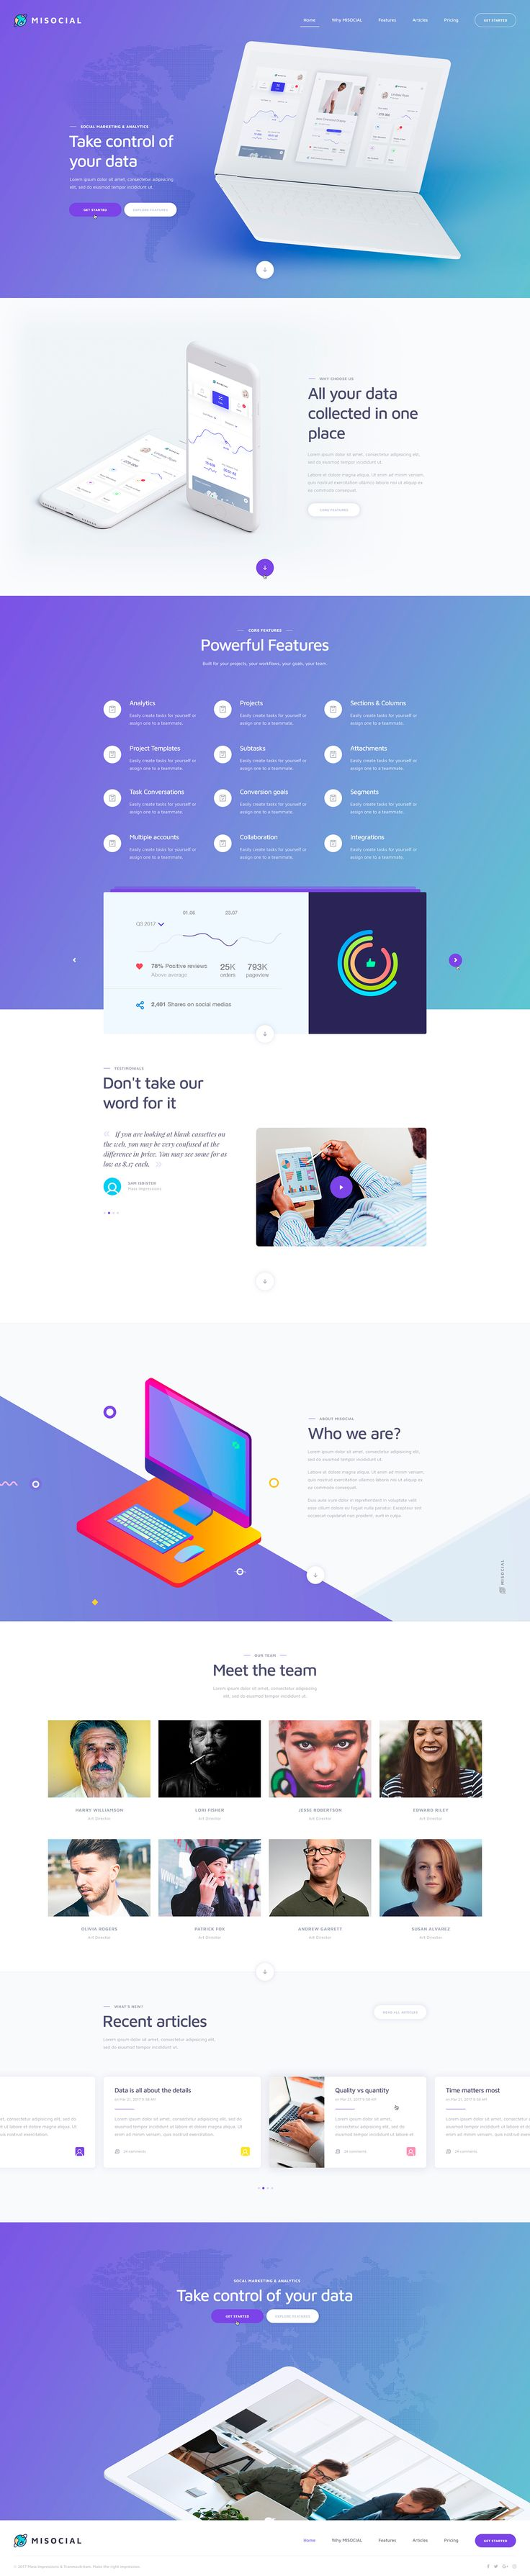 MISOCIAL – Free Template  Carefully crafted 7 web pages that include elements vital to developing any new website. The images are all free and included as smart objects. The fonts used are free Google fonts. Free for personal use.